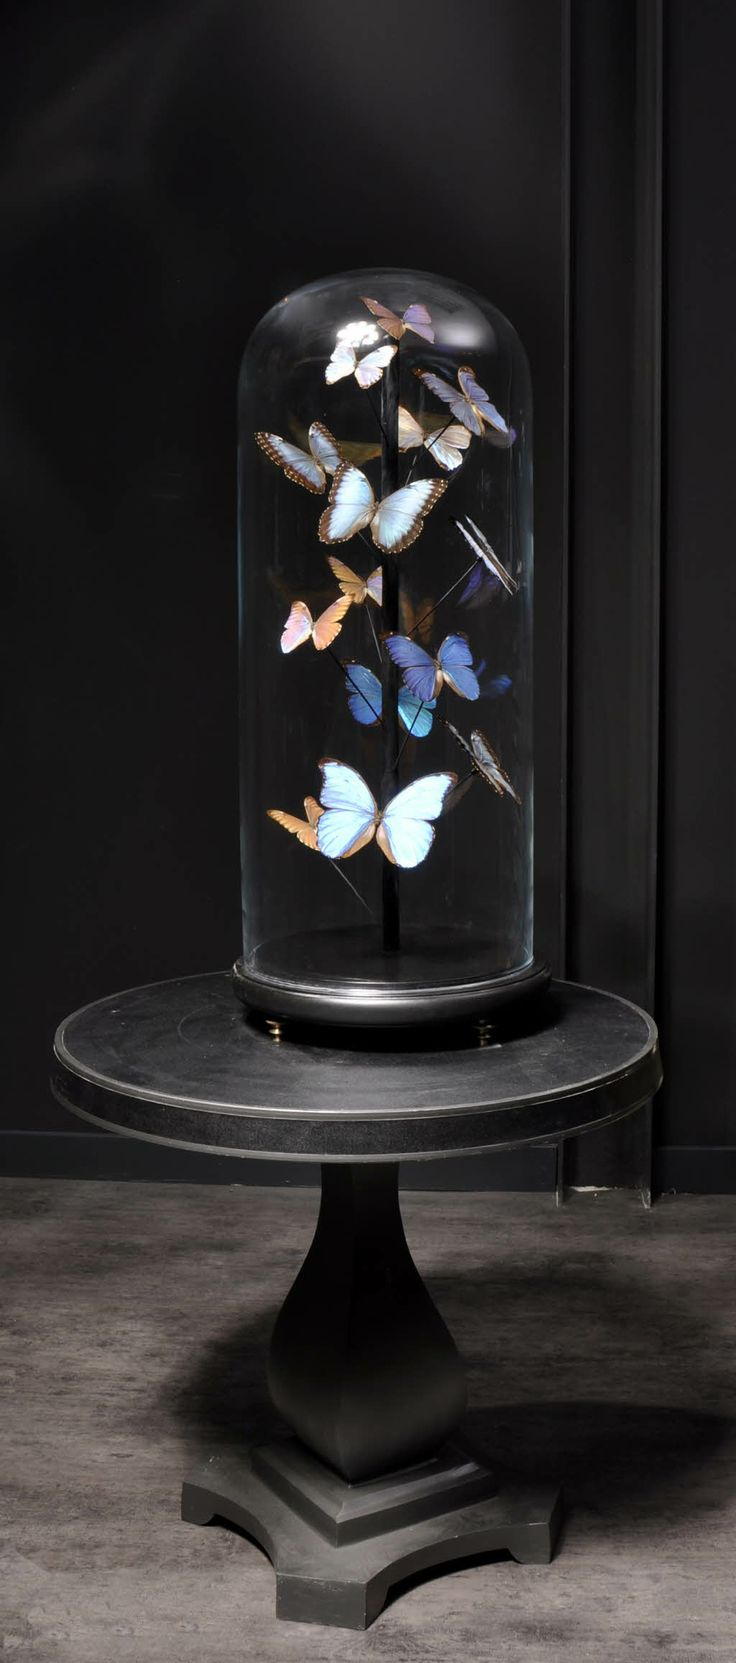 Objet de curiosité-Blue morpho butterflies under glass